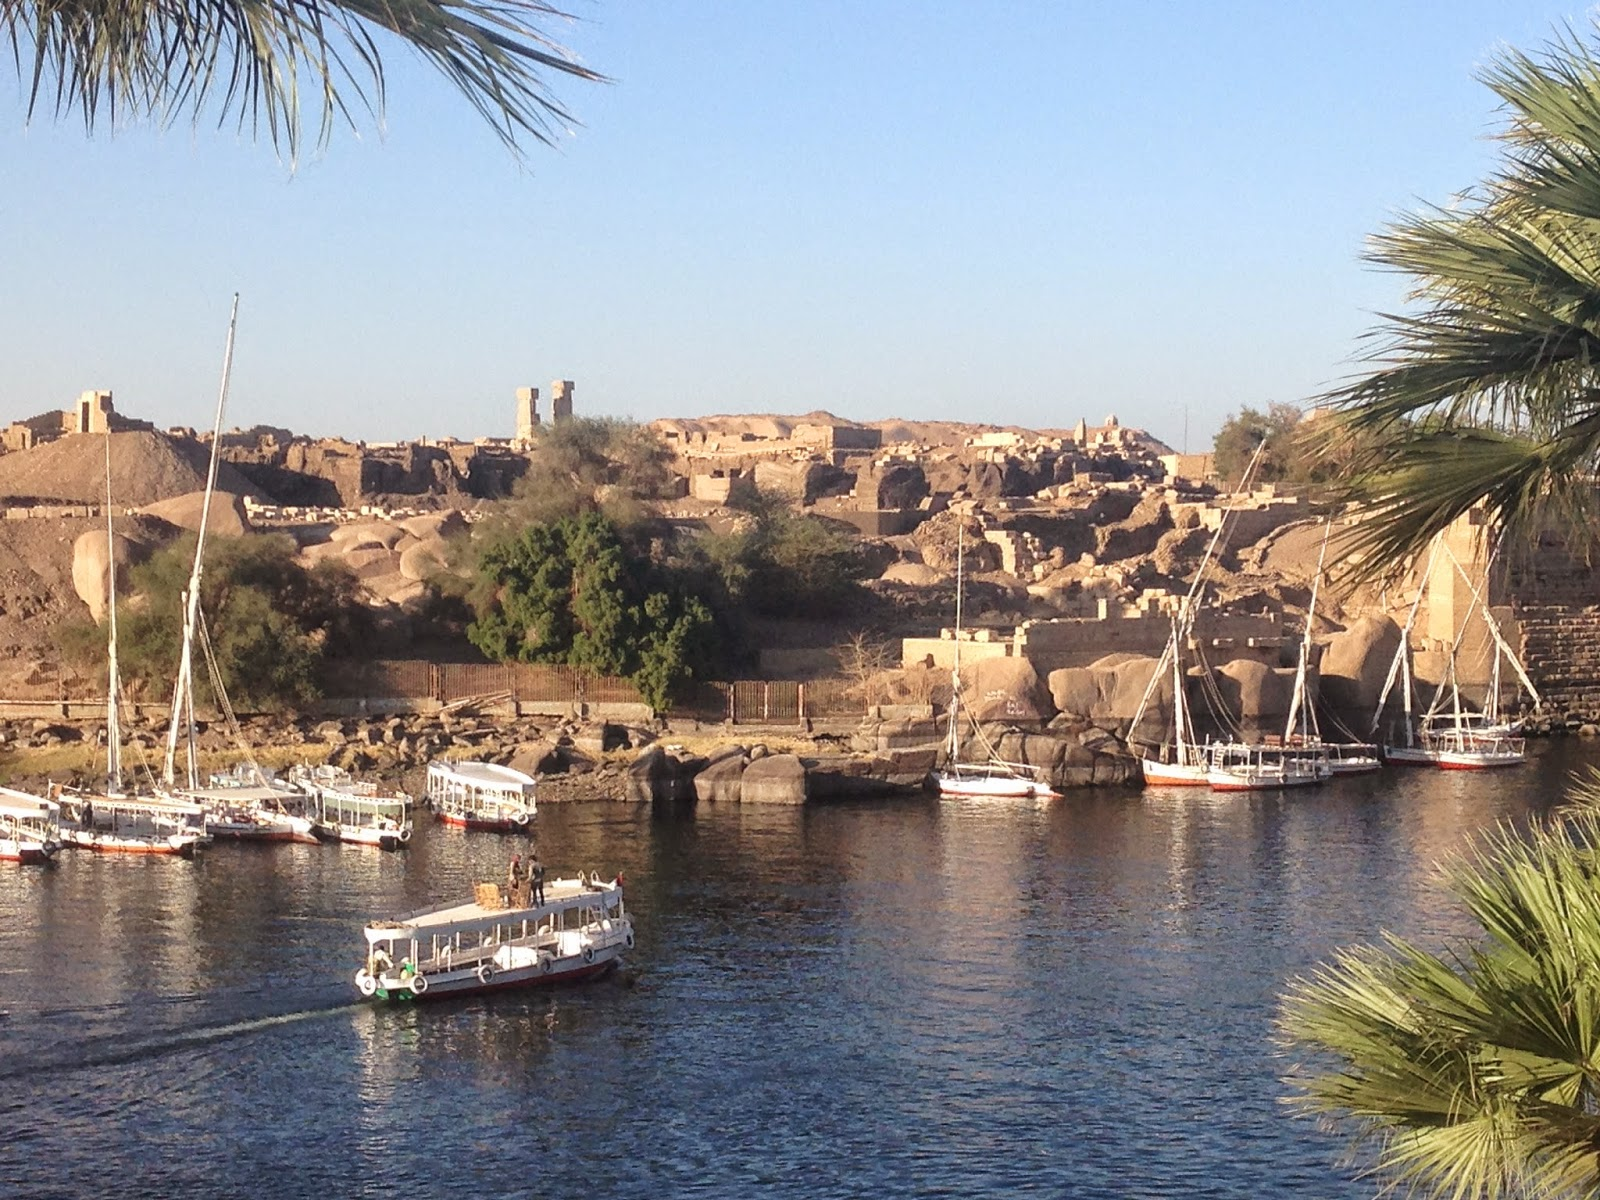 Old Cataract Hotel Aswan